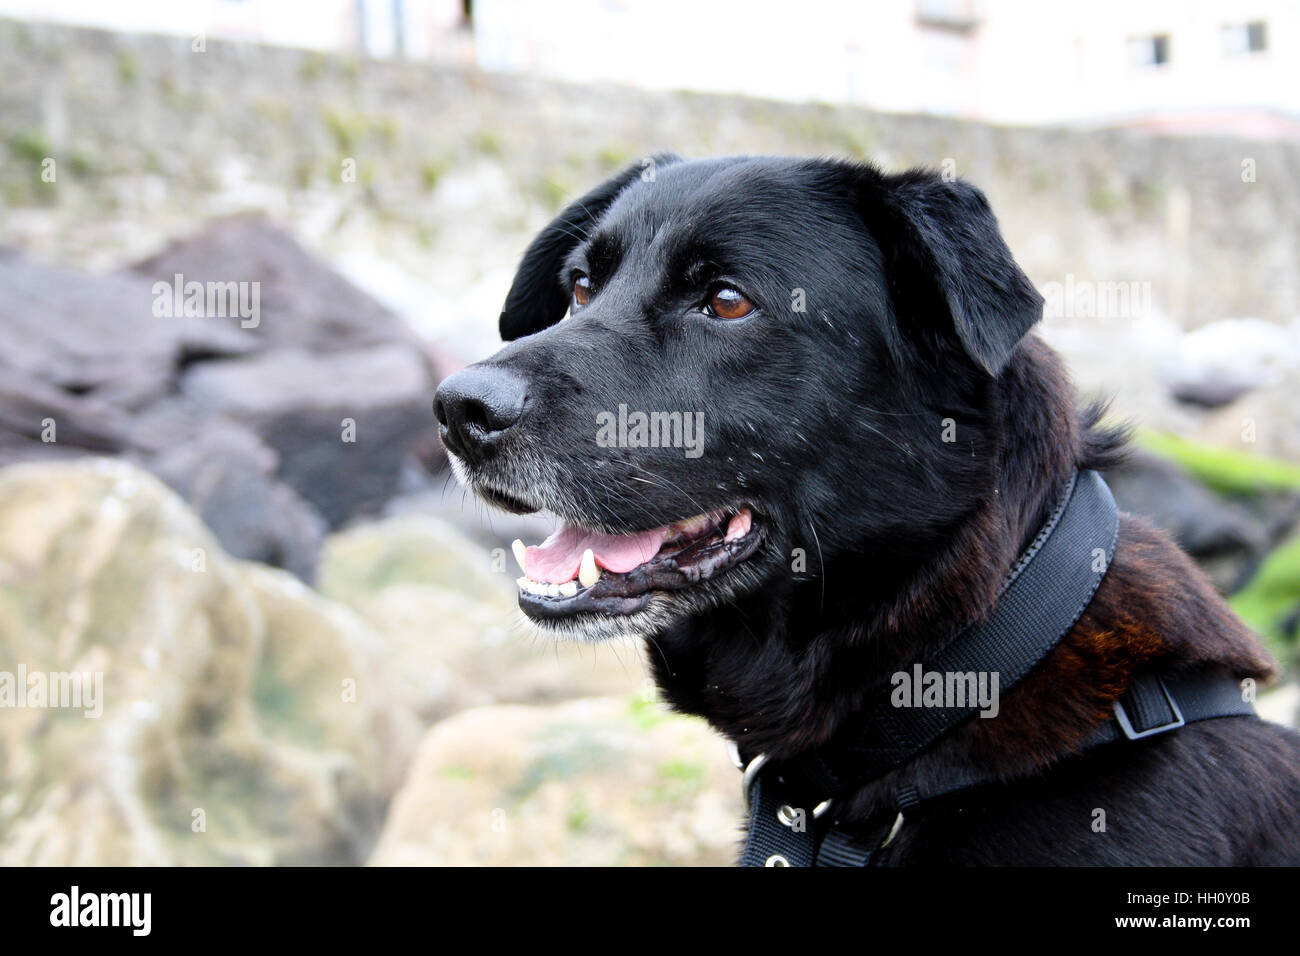 Close up of a black dog face on a beach - Stock Image